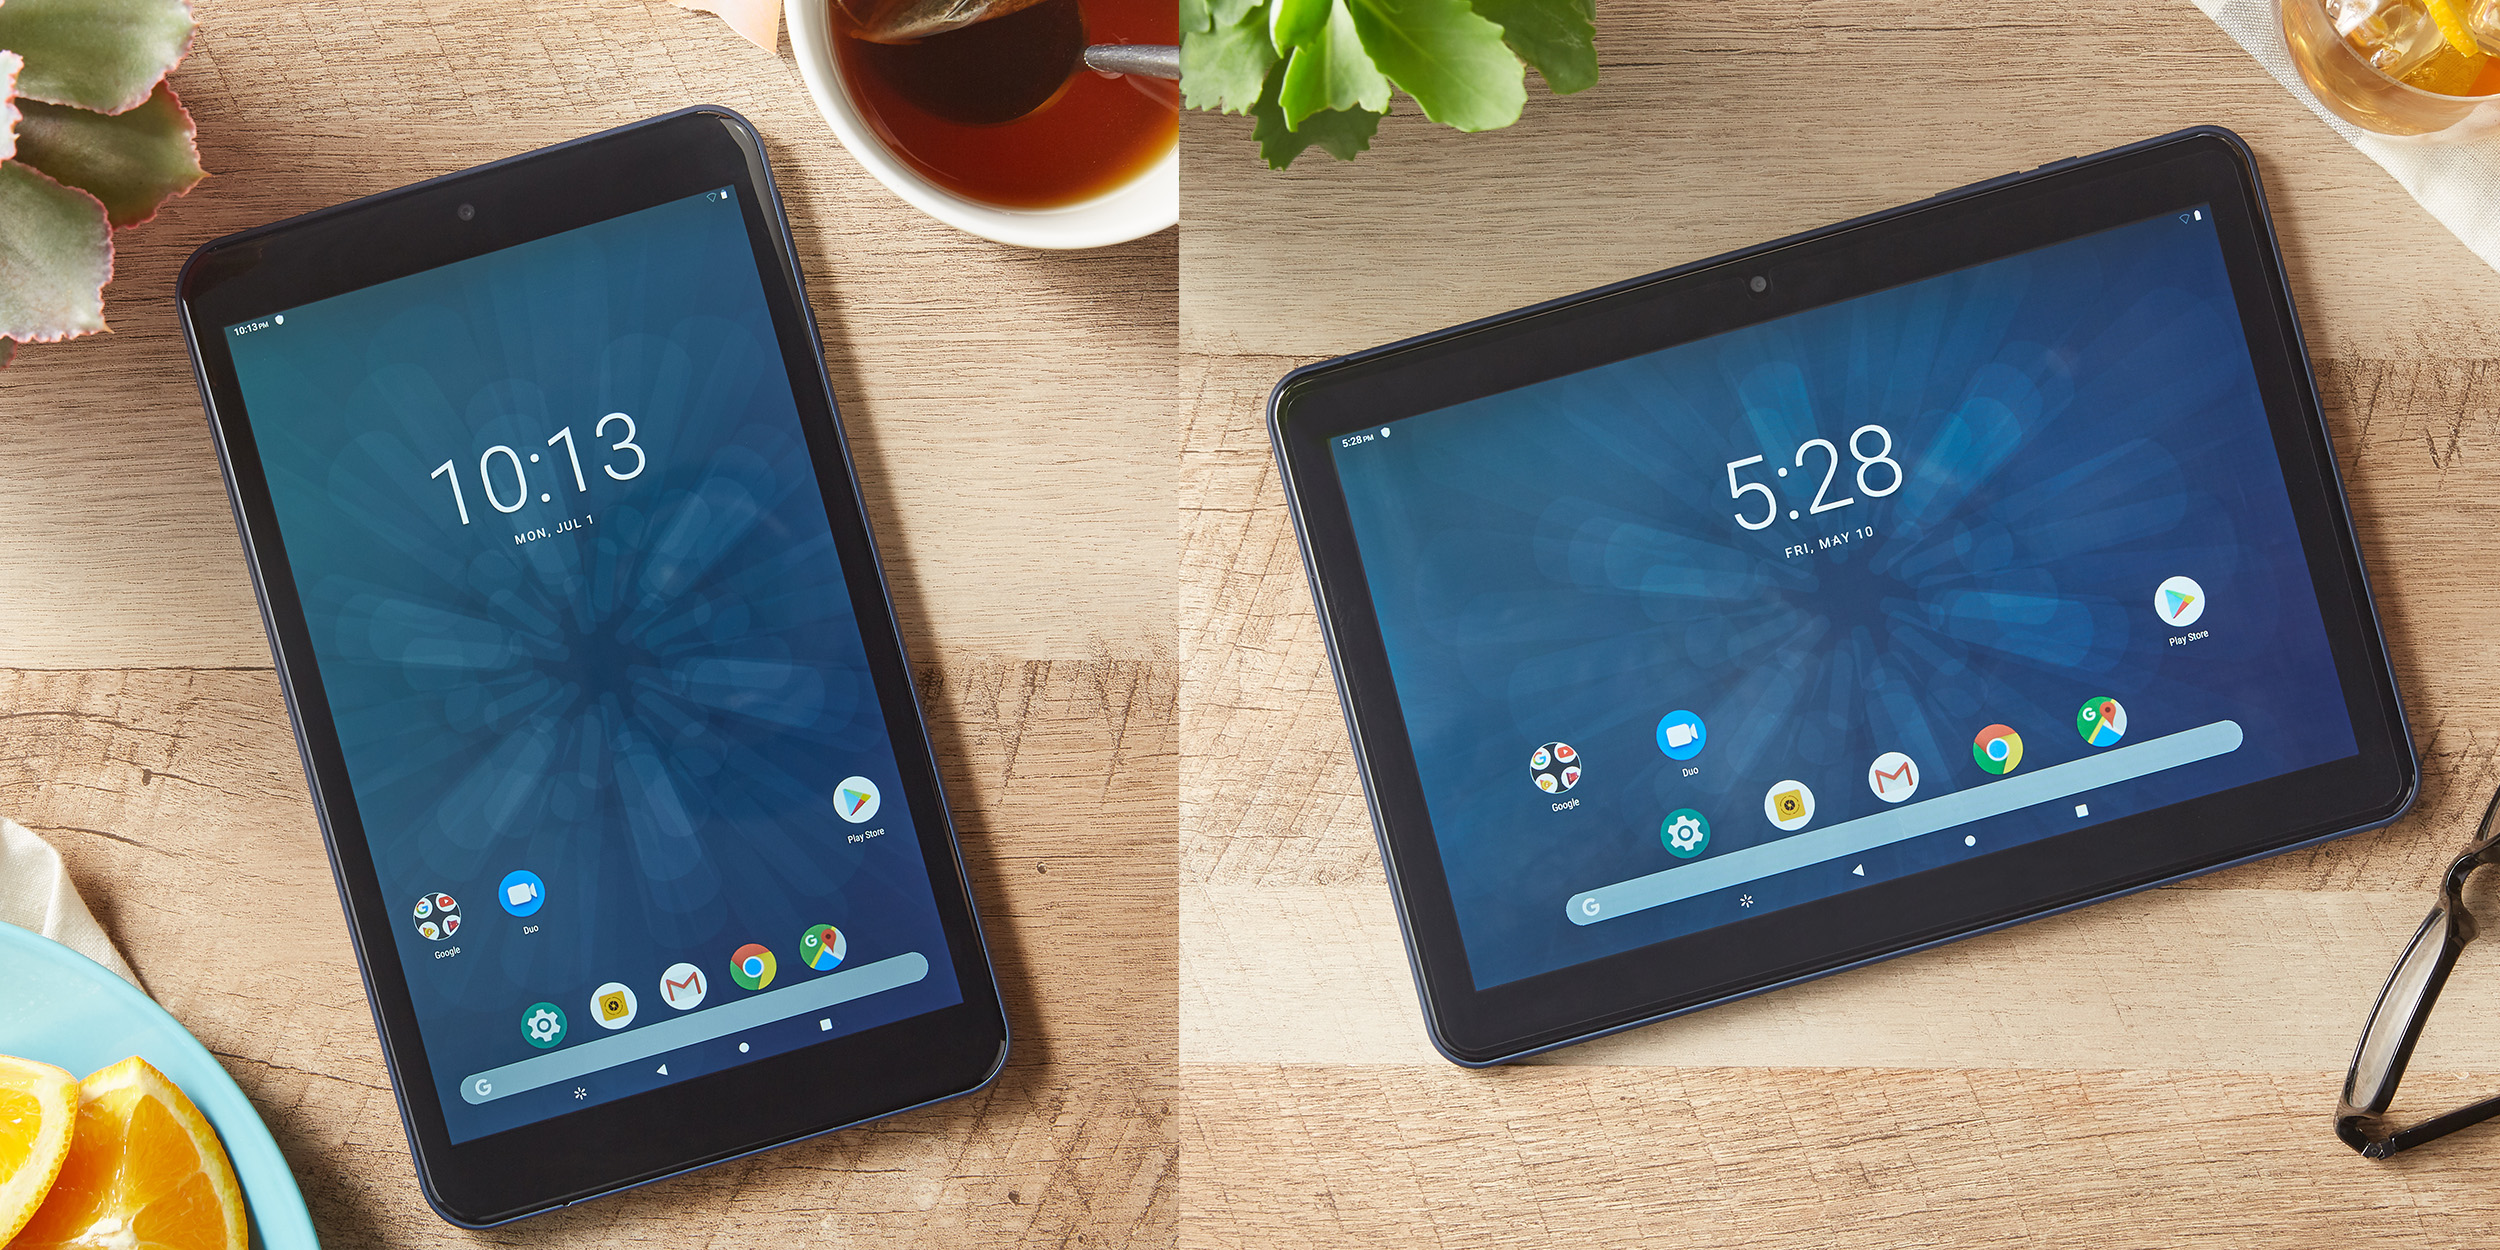 buy popular d2830 5ea14 Walmart's Onn Android tablets now available from $64 - 9to5Google